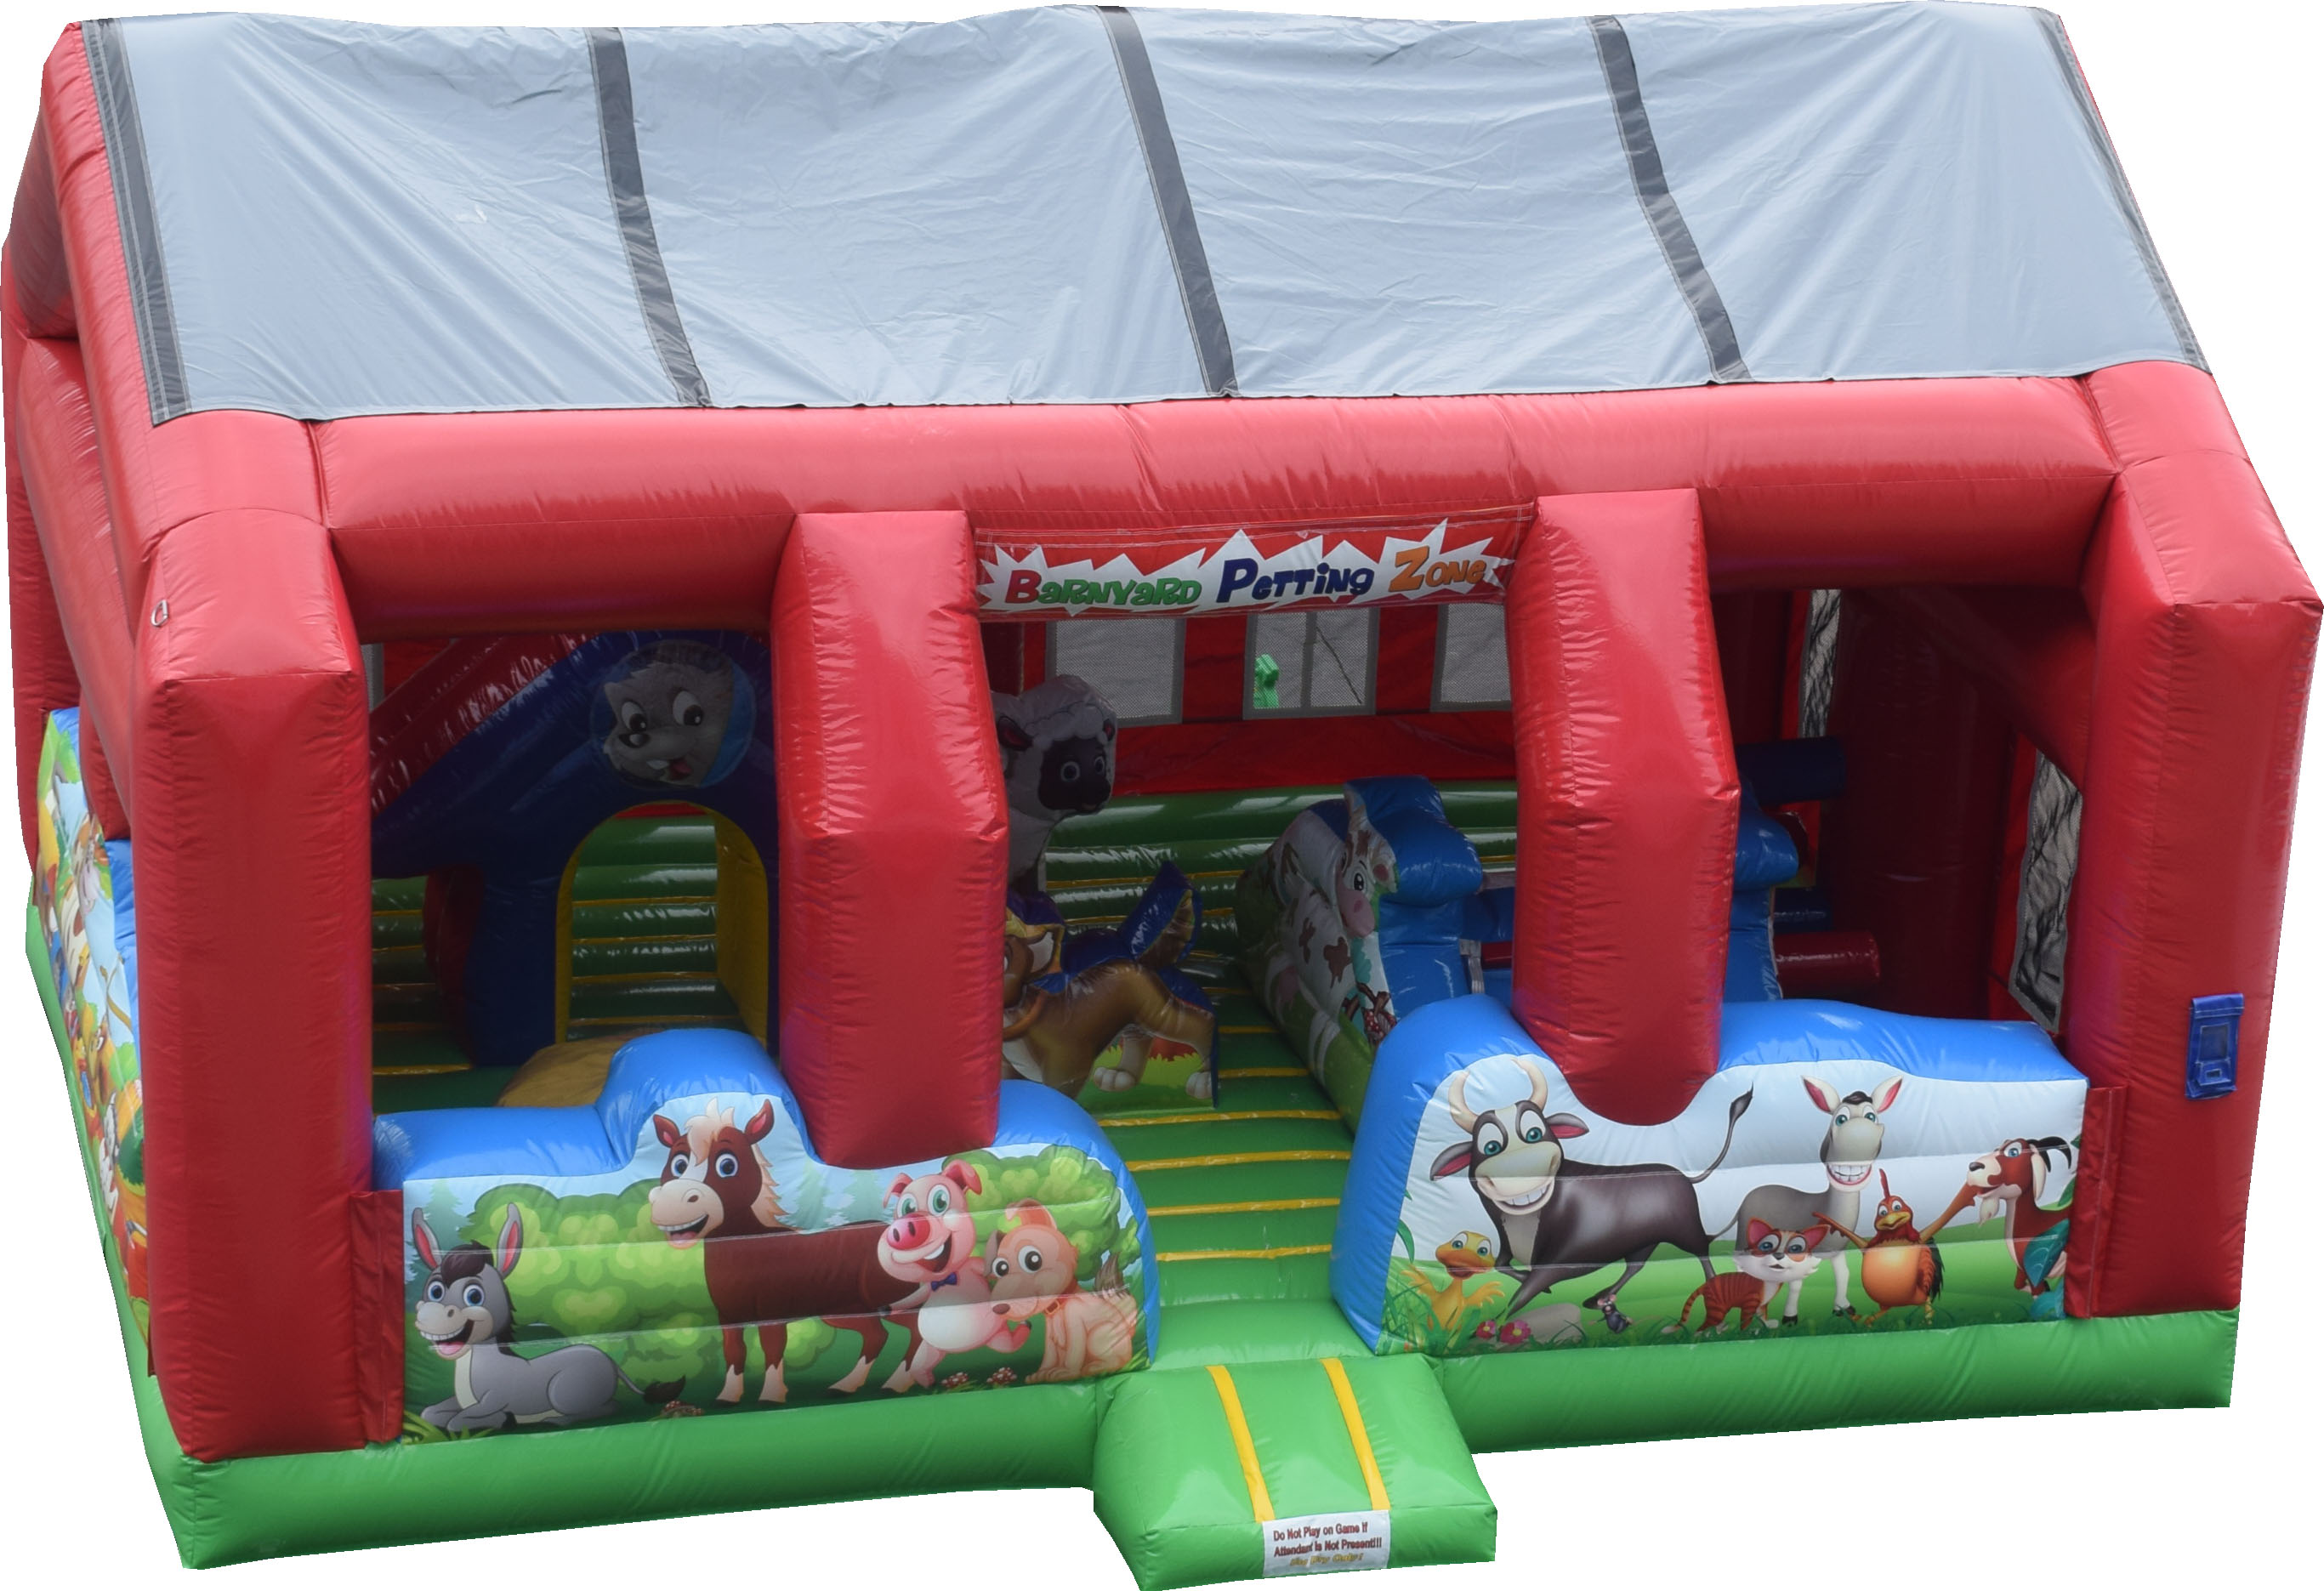 A covered play area for the younger ones at the event. Features a small slide, Inflatable rocking characters, obstacles and bouncing areas.